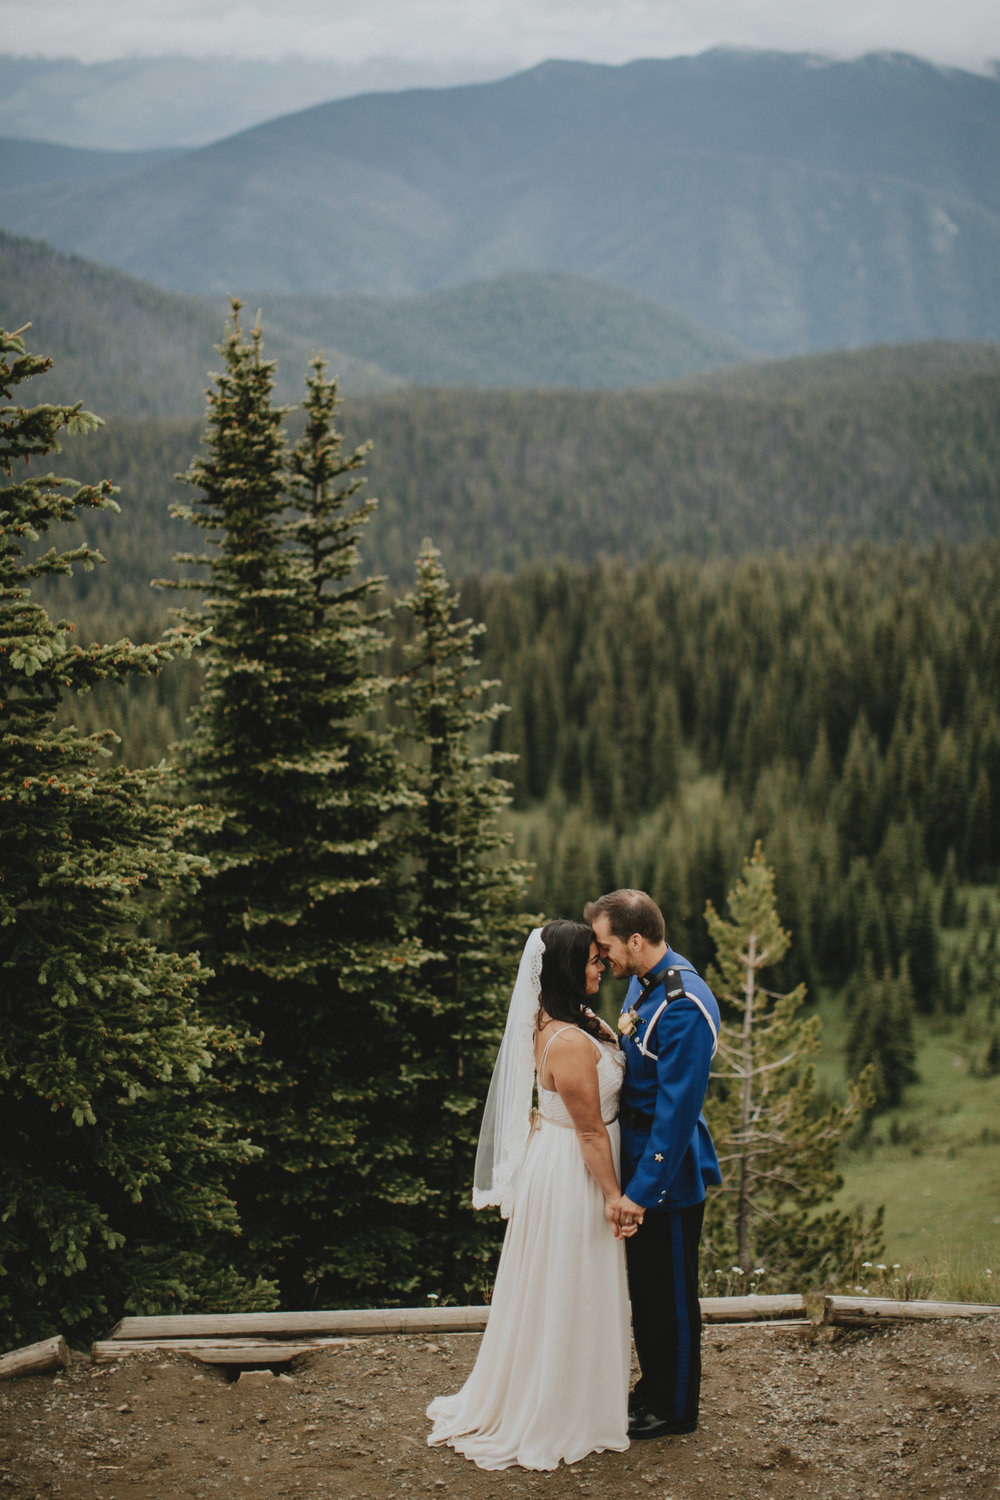 Morgan-Art-Wedding-Squarespace-93.jpg